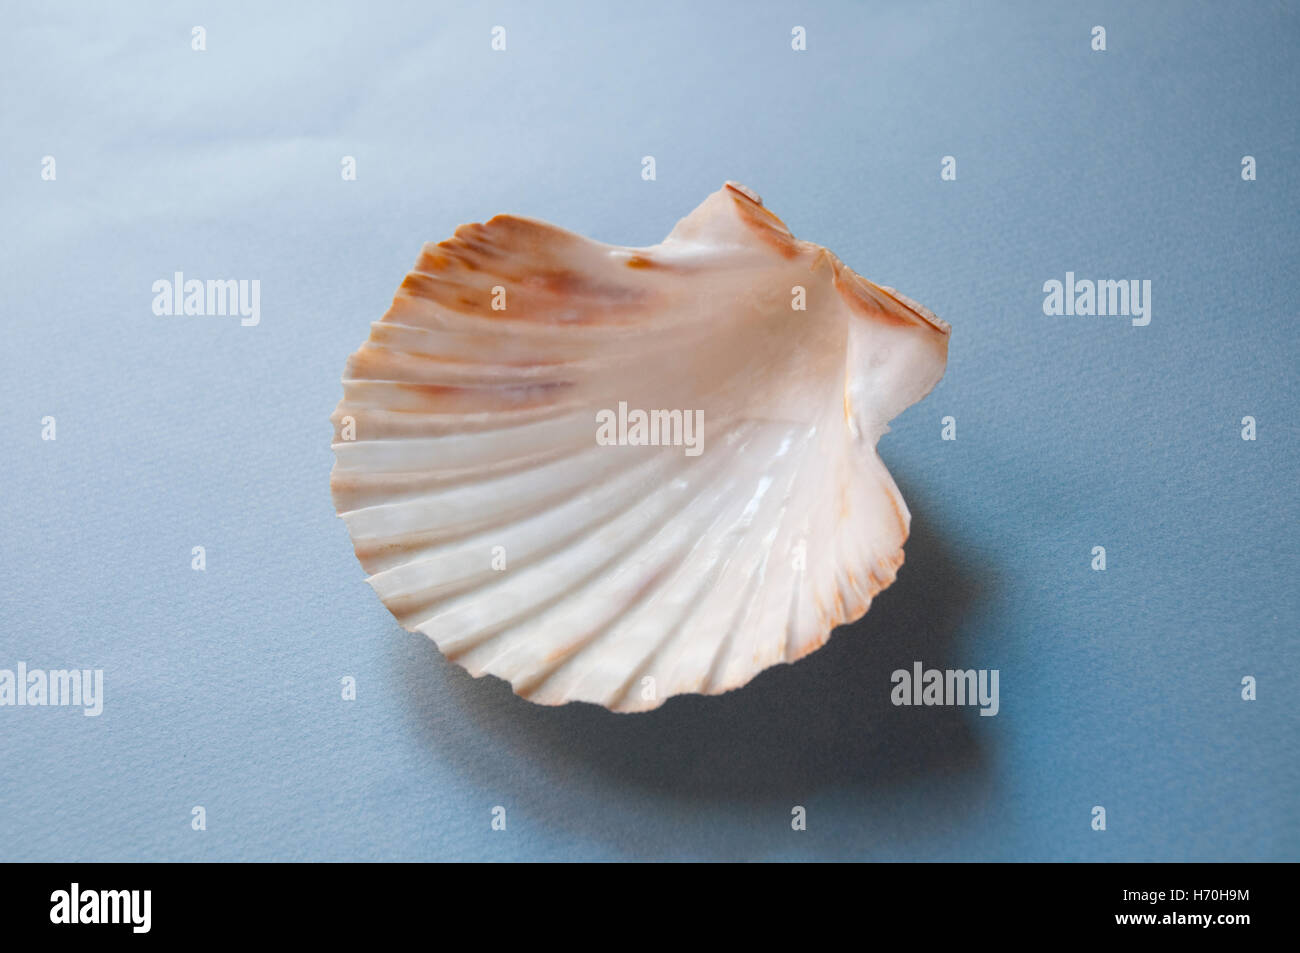 Shell of scallop. - Stock Image